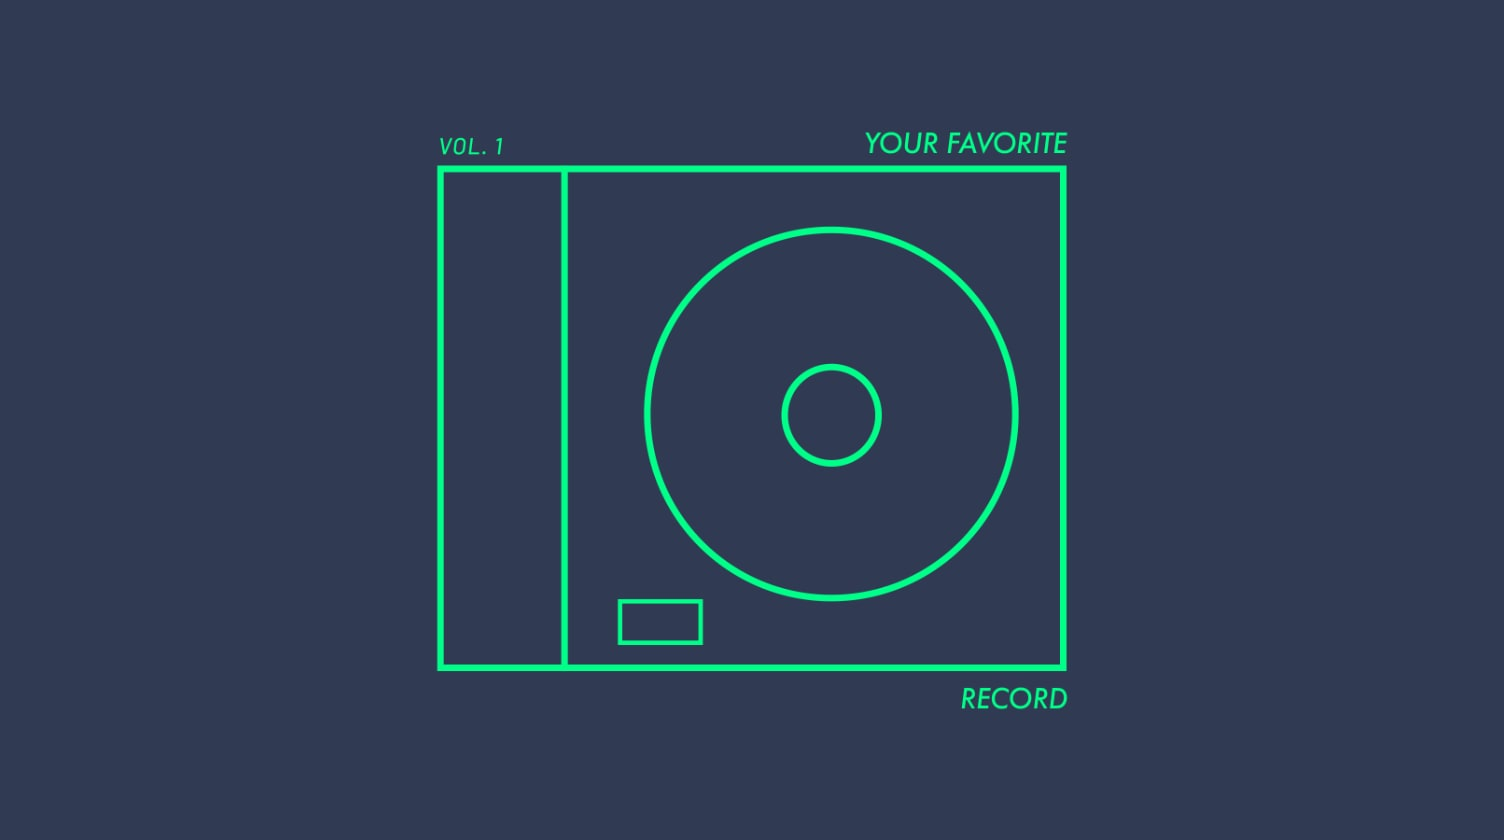 Your Favorite Record